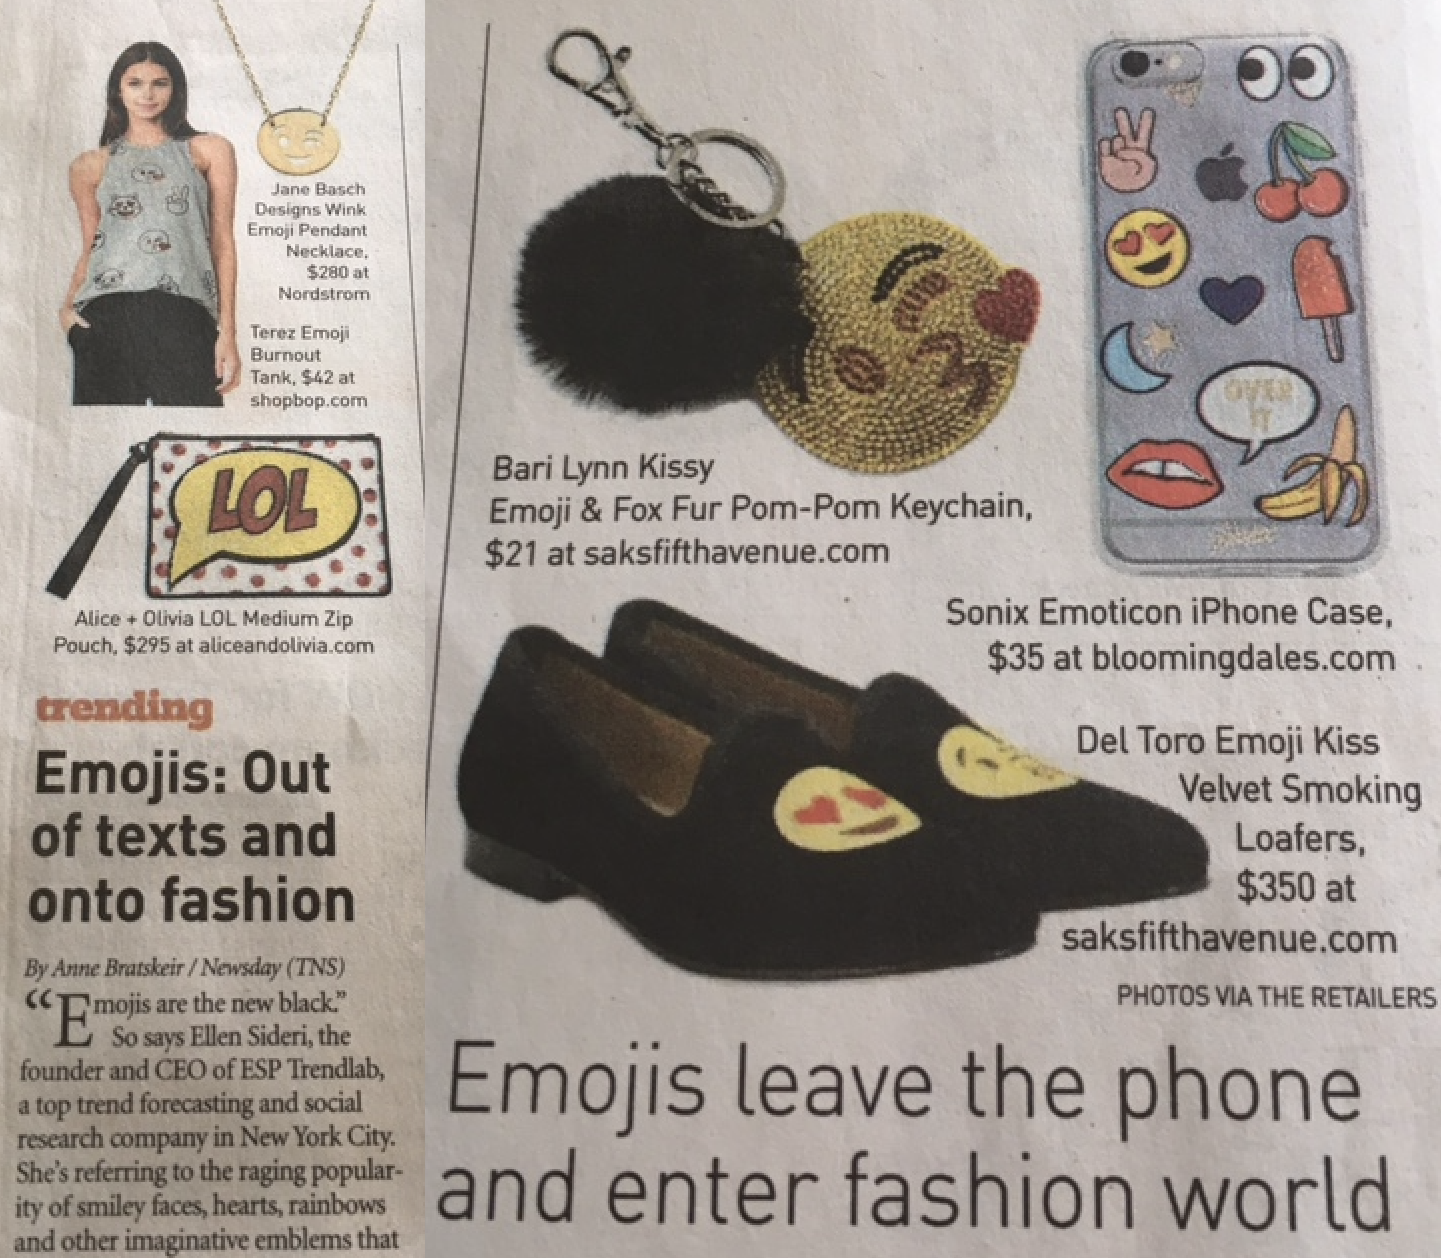 Emoji leave the phone and enter the fashion world #trendy